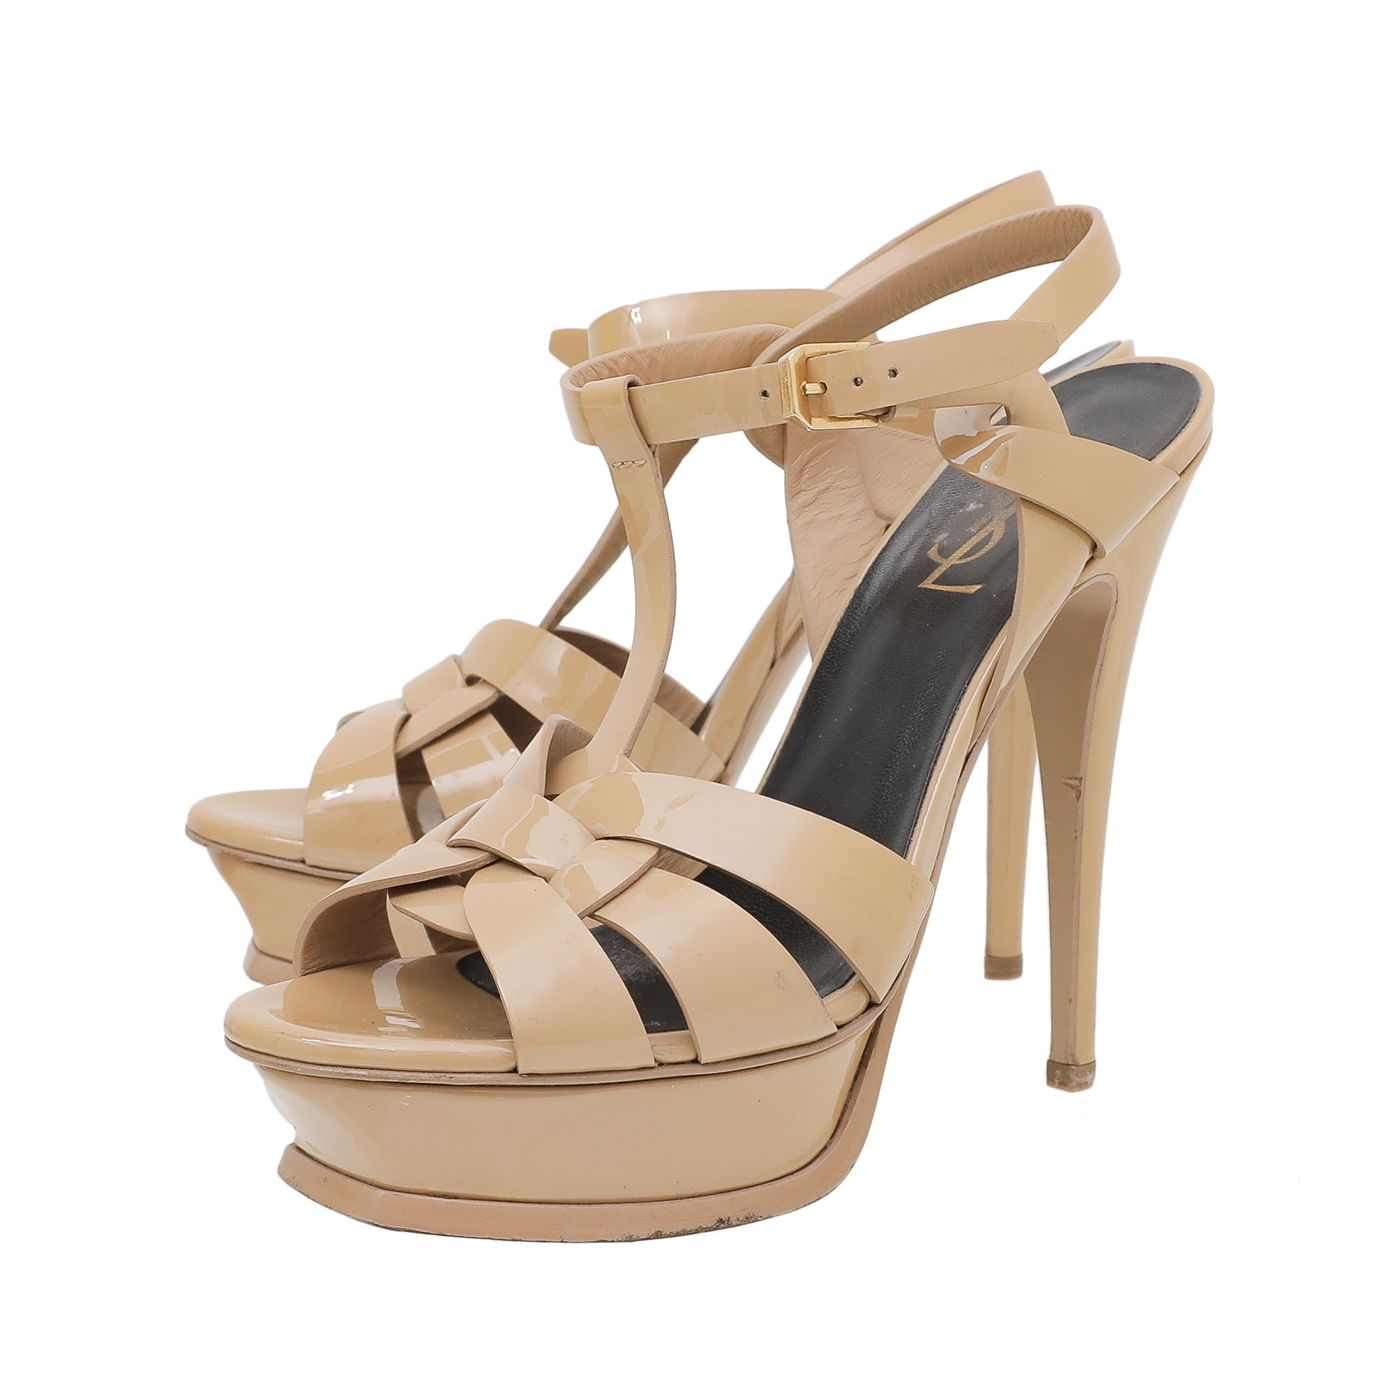 YSL Nude Tribute High Heeled Sandals 38.5